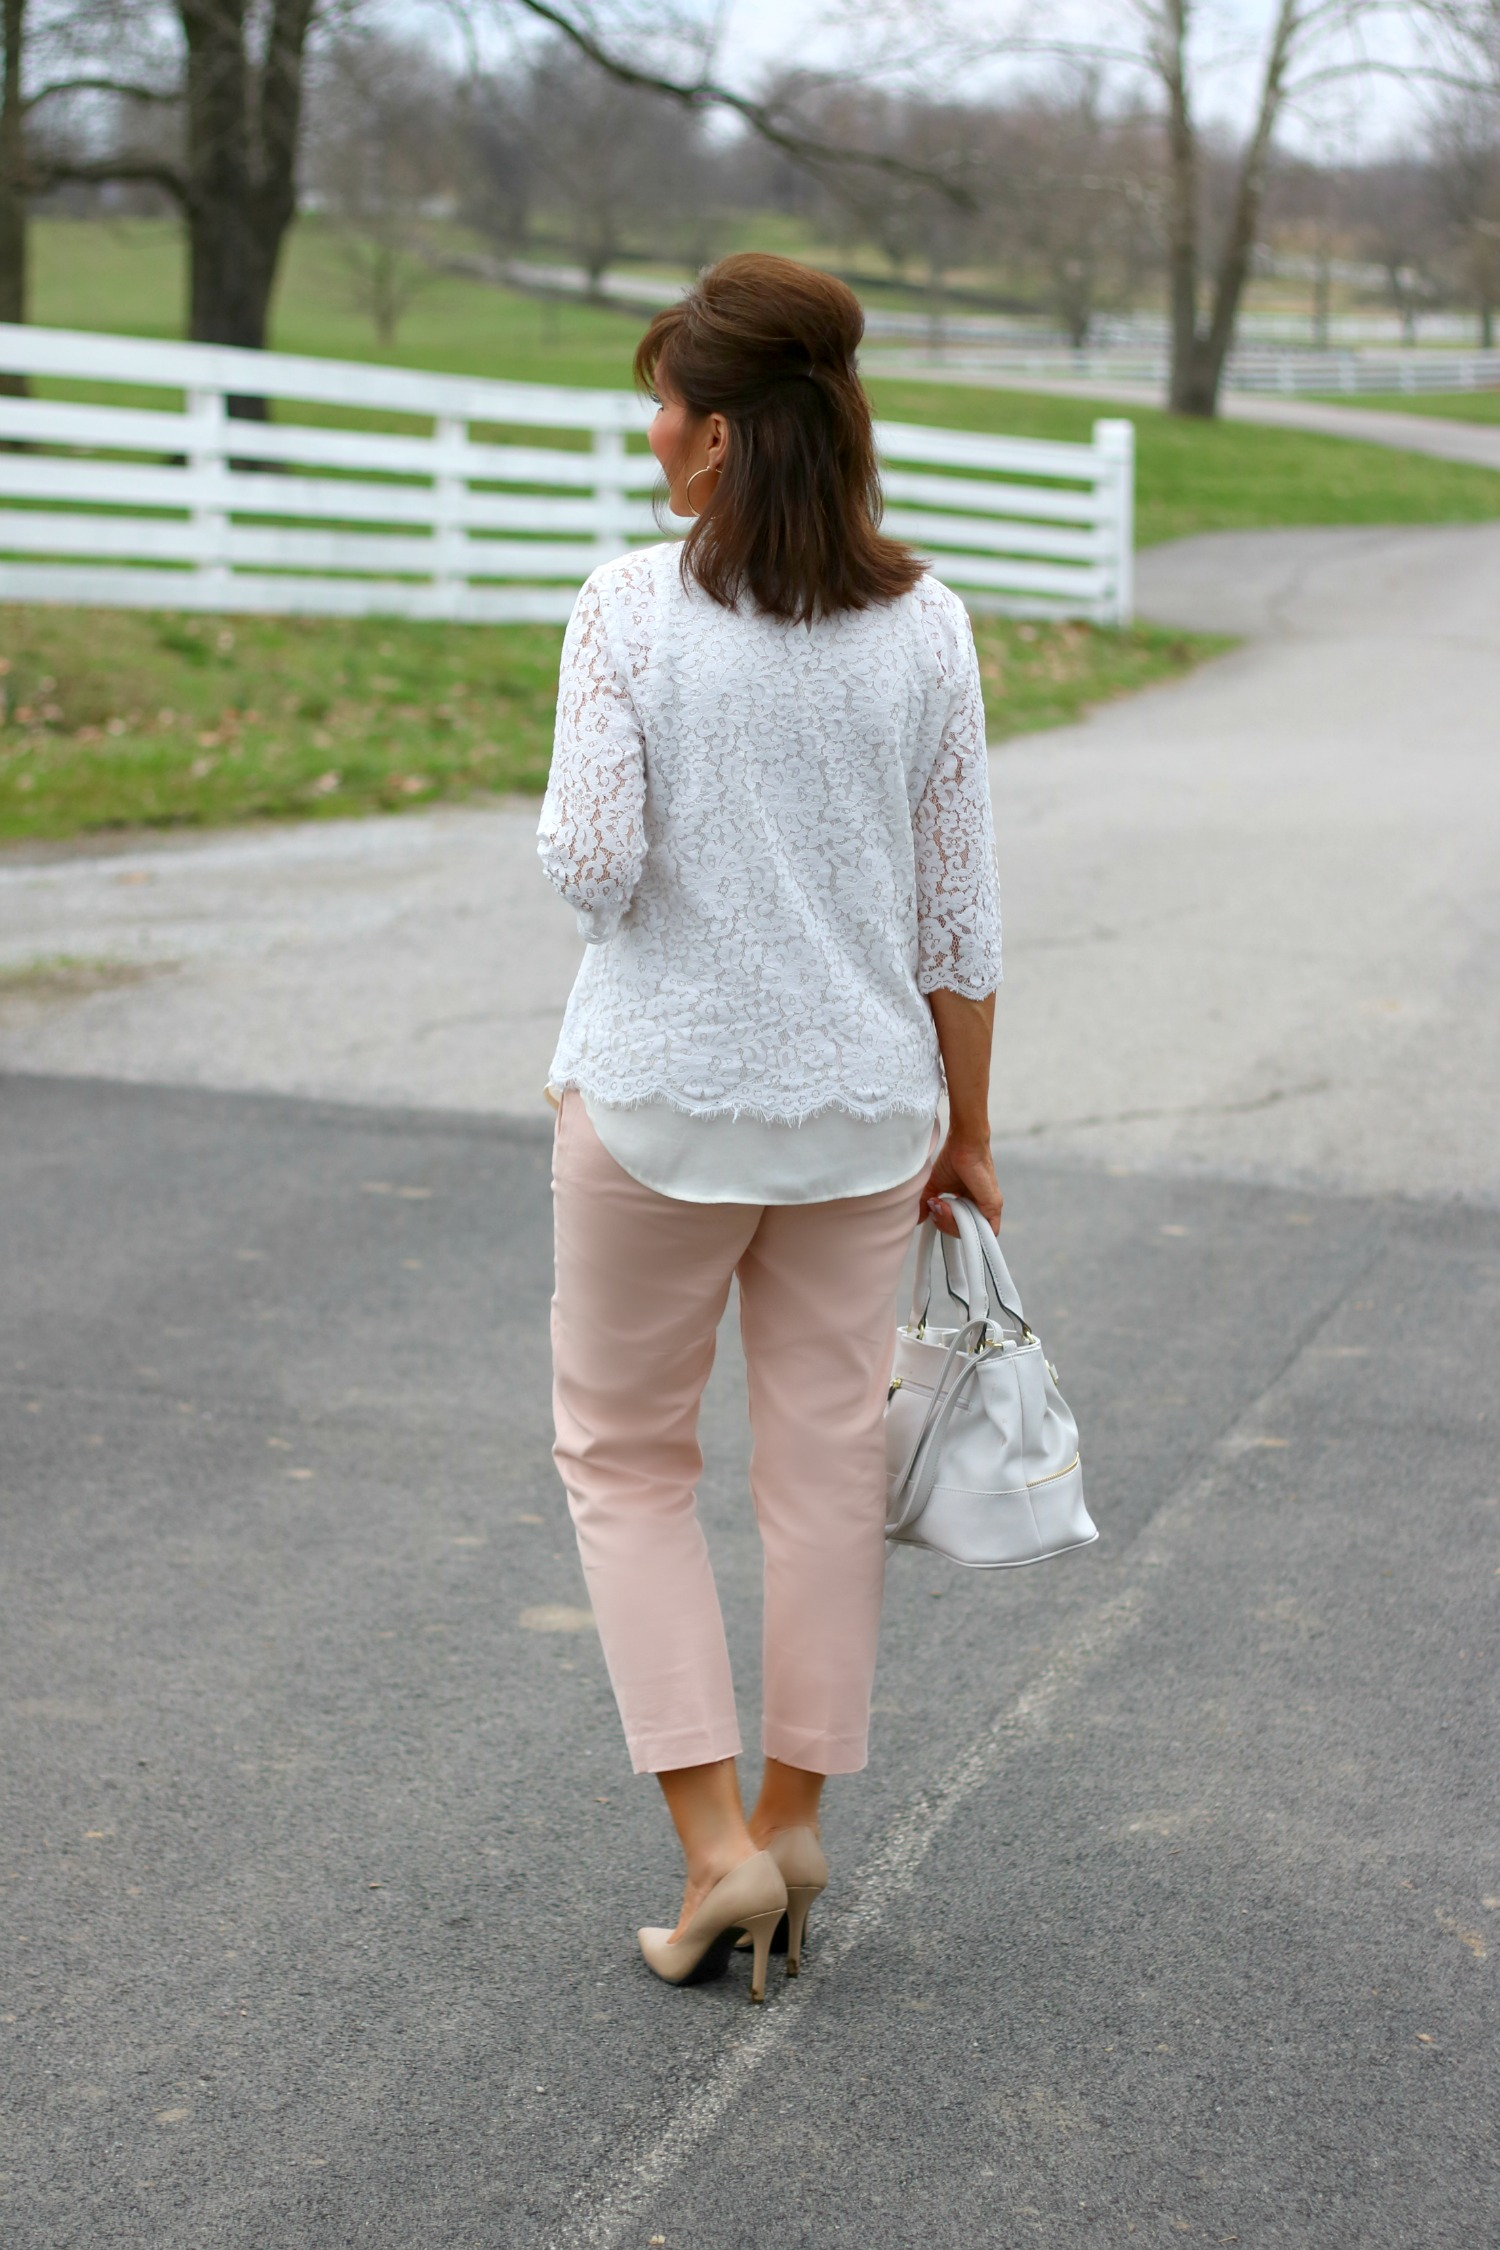 27 Days of Spring Fashion: The Harper Pant from Old Navy